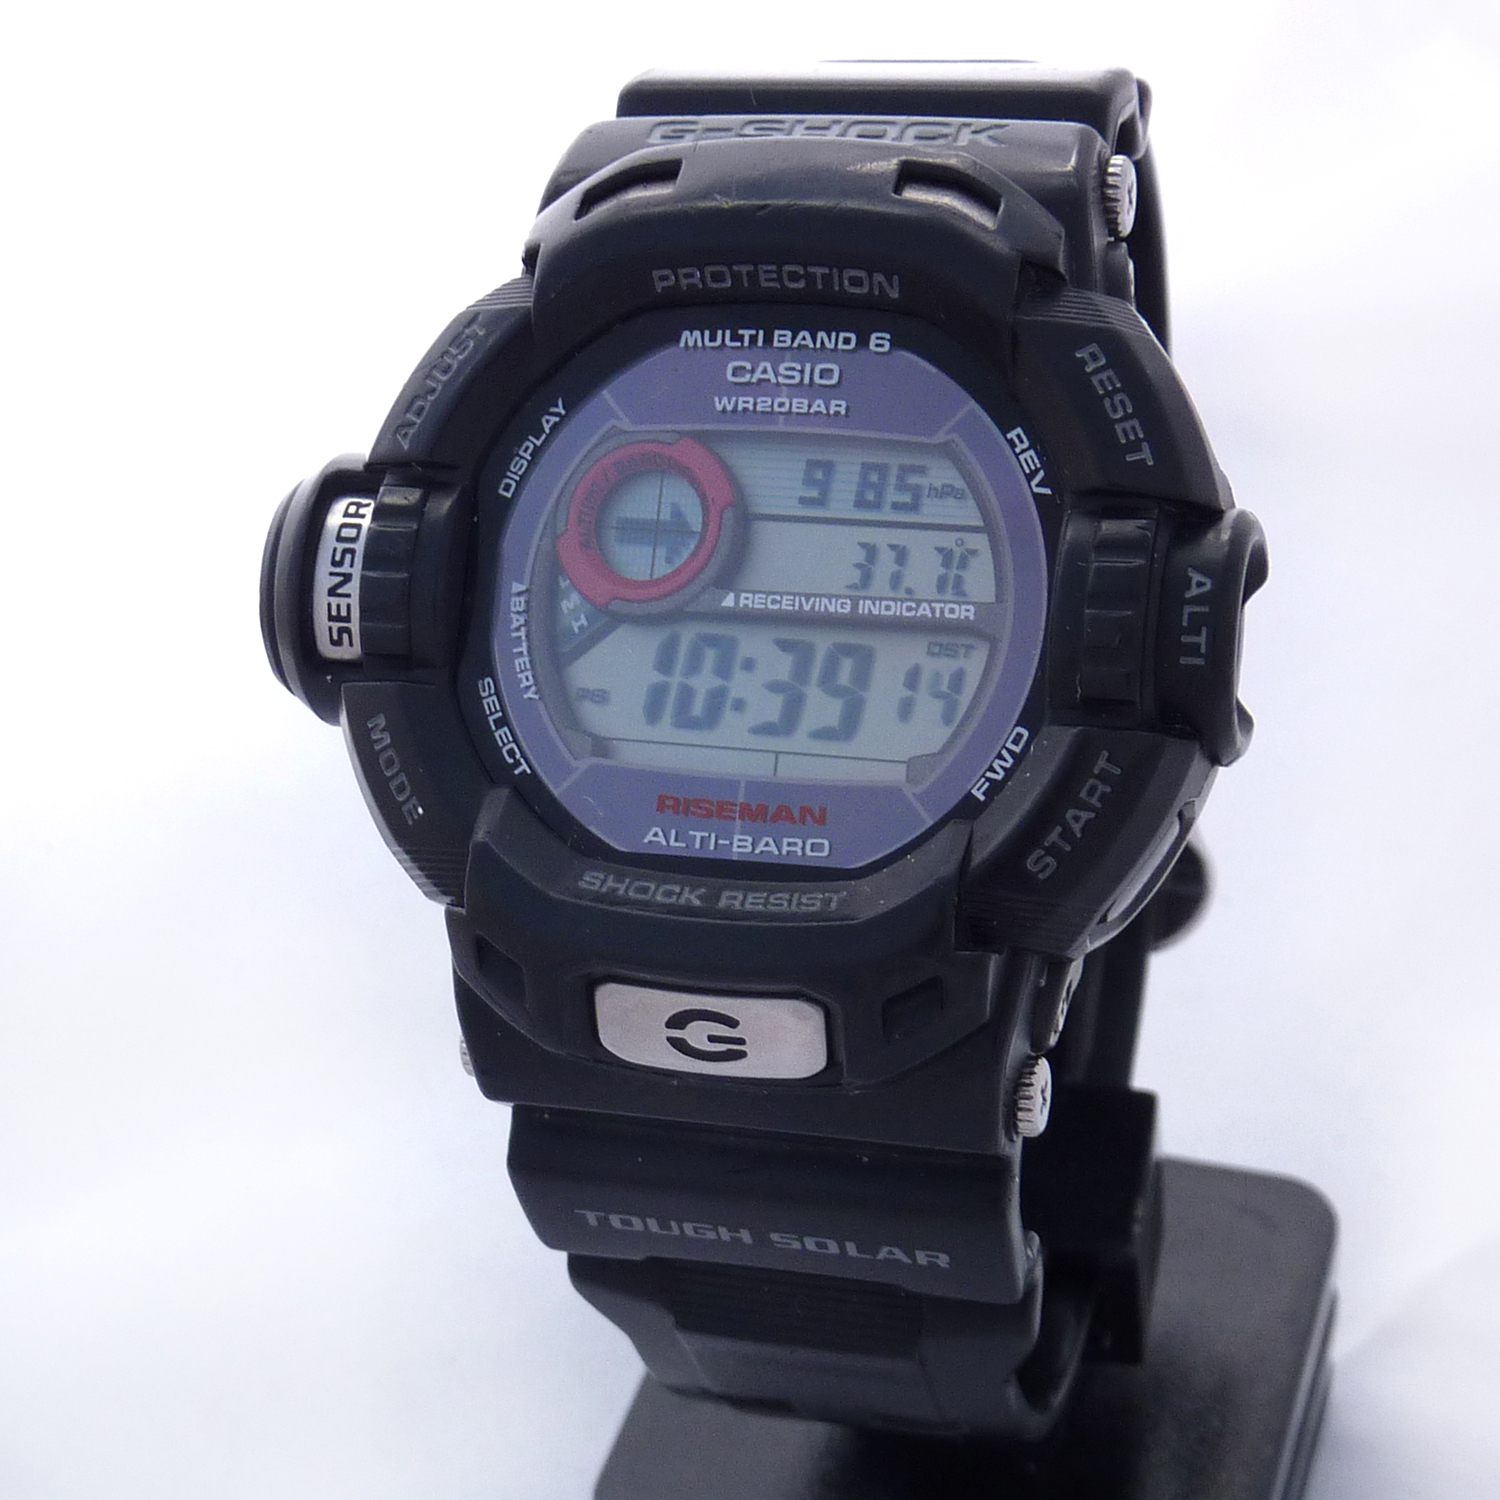 Asequibles Gw9200 Riseman Relojes ReviewCasio – m8wvNn0